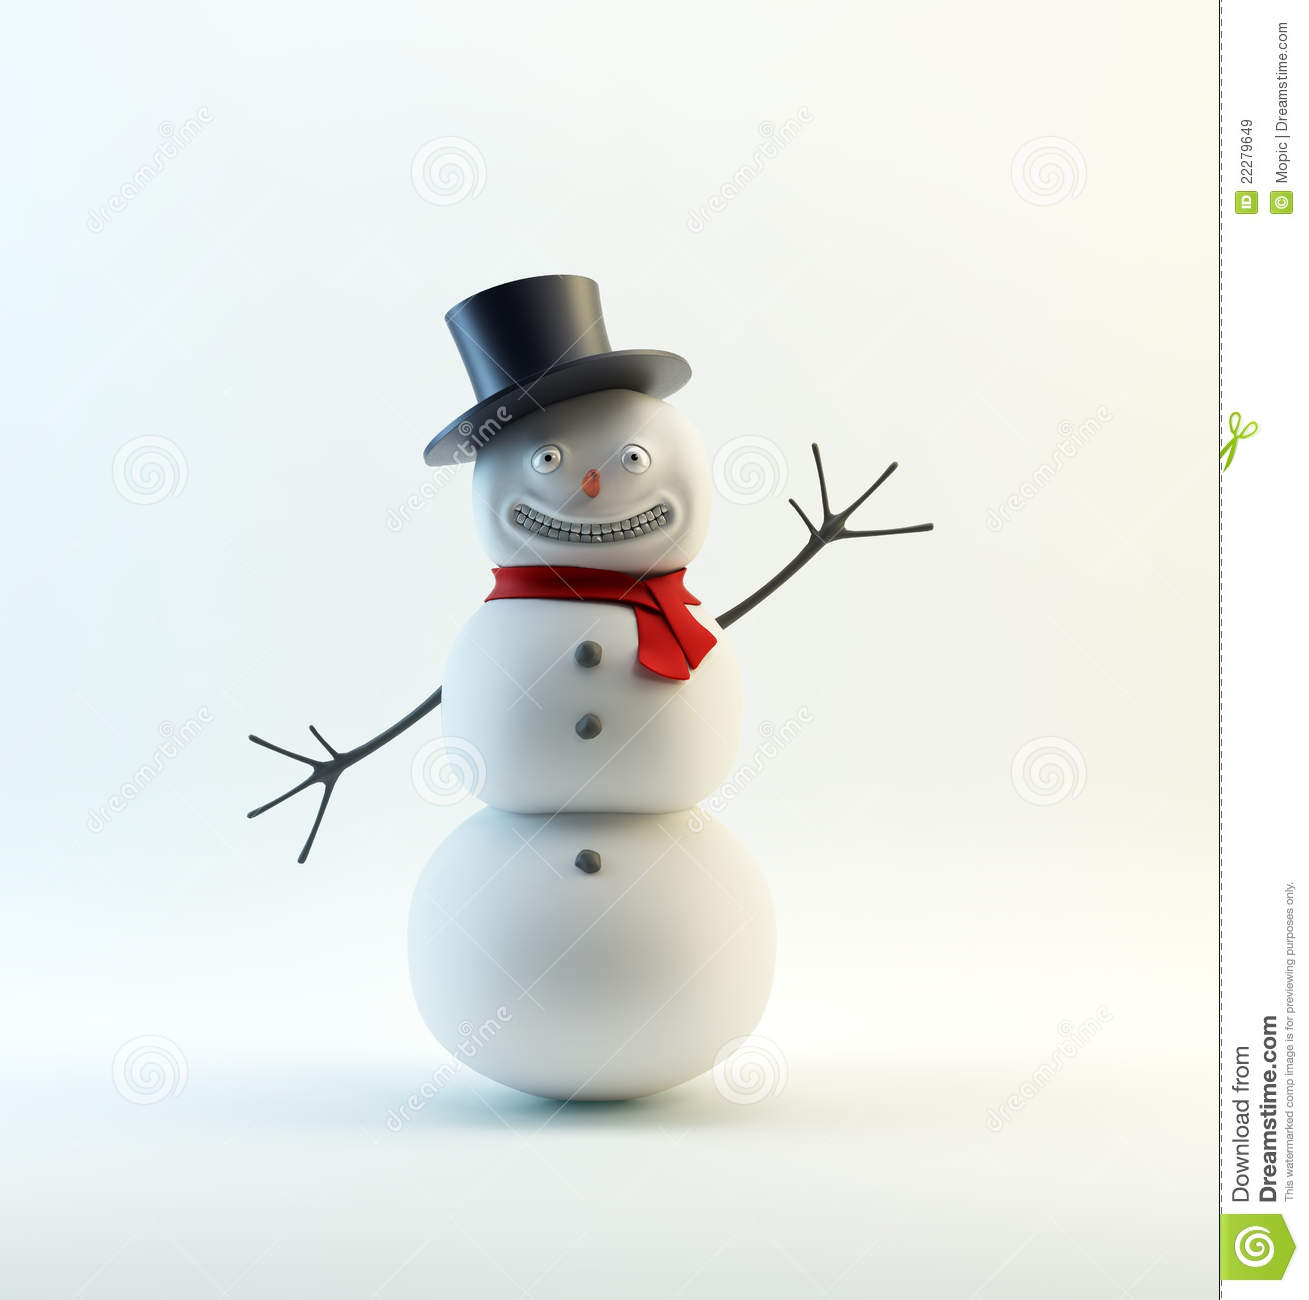 smiling snowman with a red scarf stock illustration